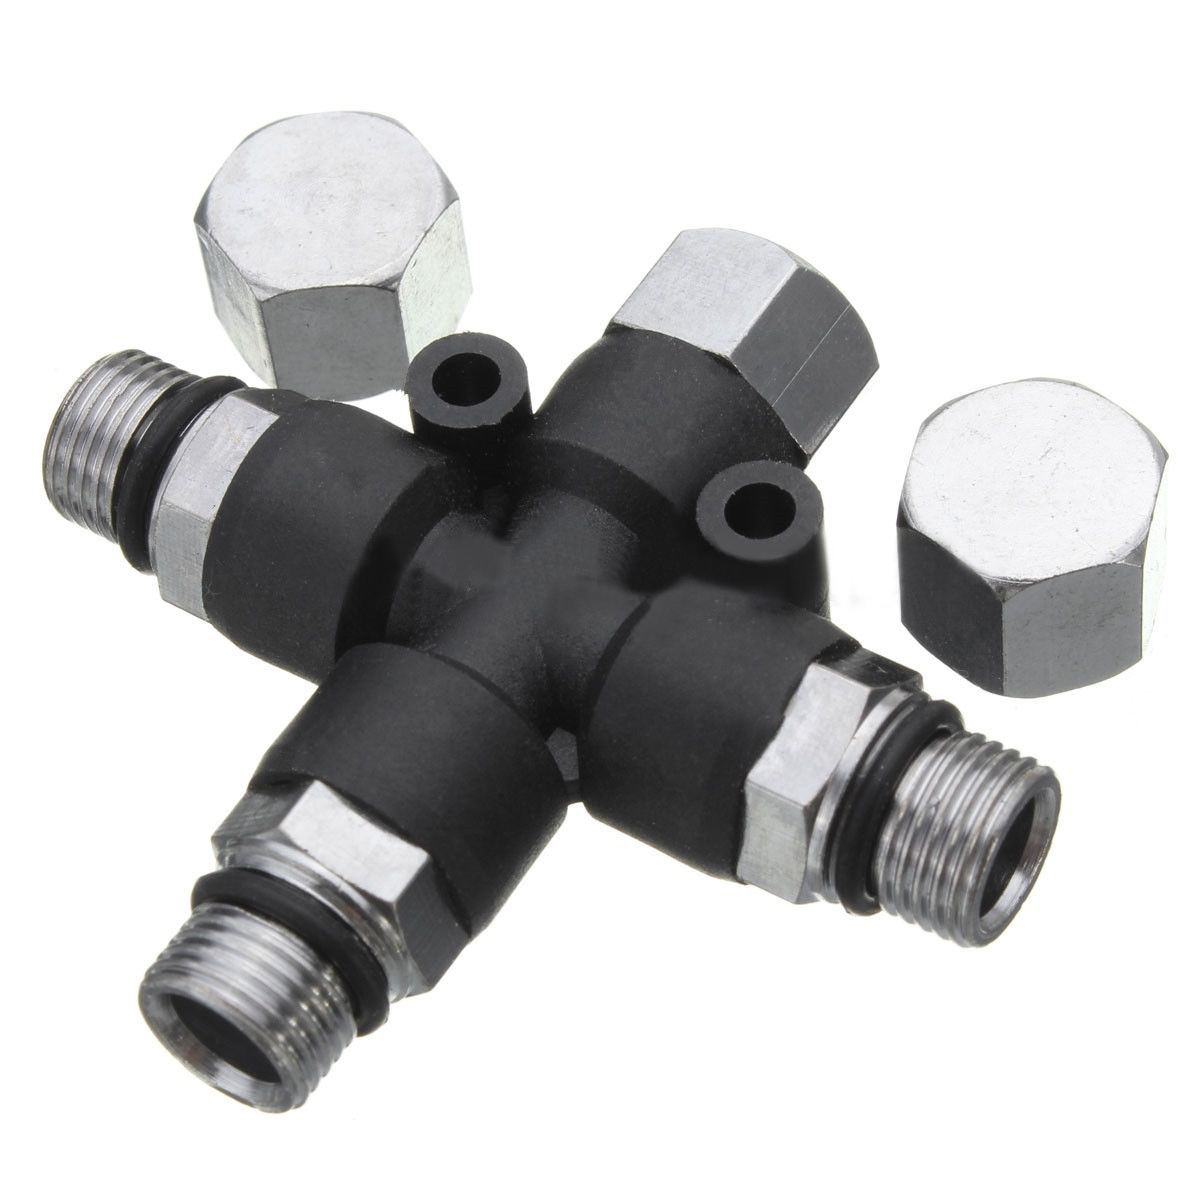 Mayitr 3 Way Air Splitter Fitting Connector 1/8 BSP 50 MPa Multi Use Nail Painting Spray Accessory For Airbrush Mini Compressor kkmoom high quality 3 way airbrush air hose splitter aerografo accessories with 1 4 bsp female inlet 1 8 bsp male air outlet